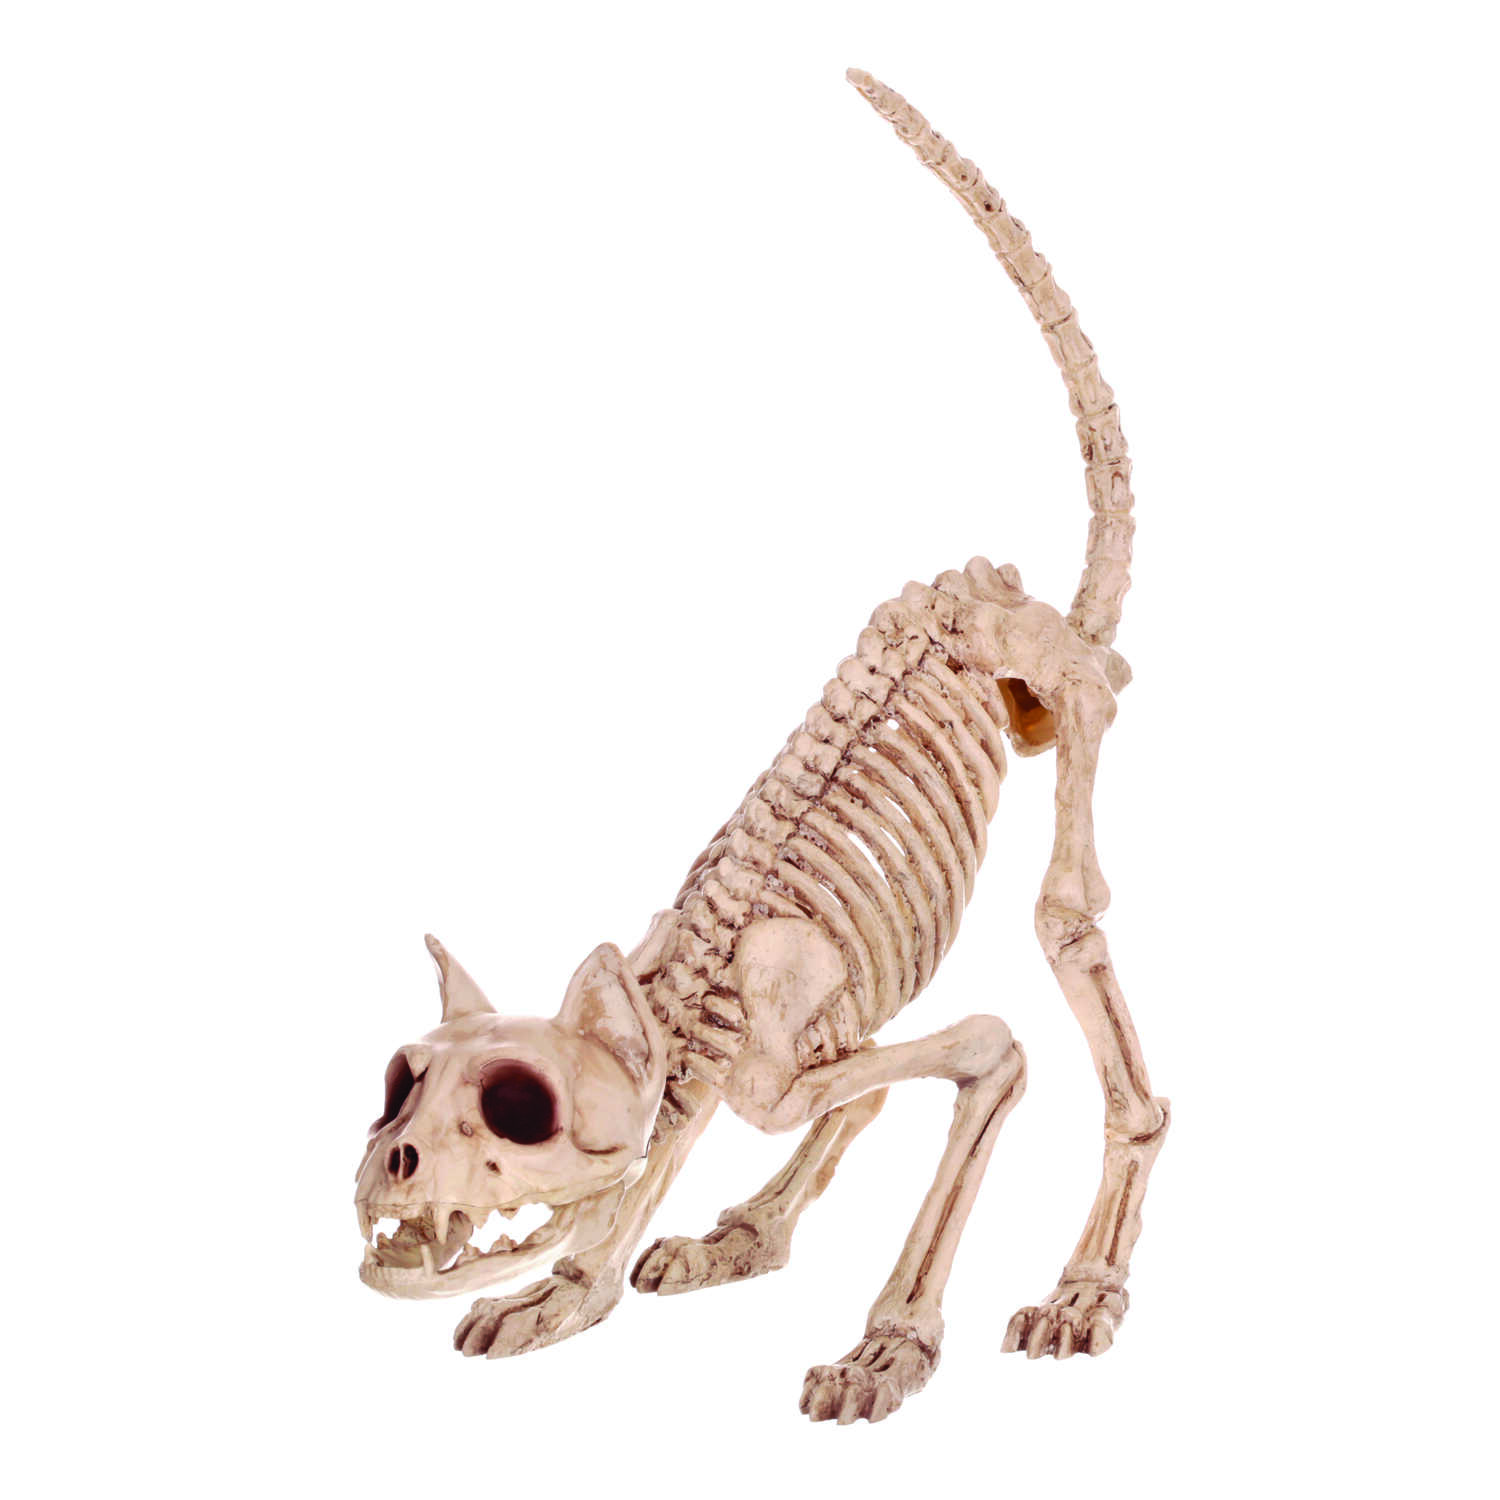 Seasons  Skeleton Kitty Bonez  Halloween Decoration  7 in. H x 6 in. W x 20 in. L 1 pk